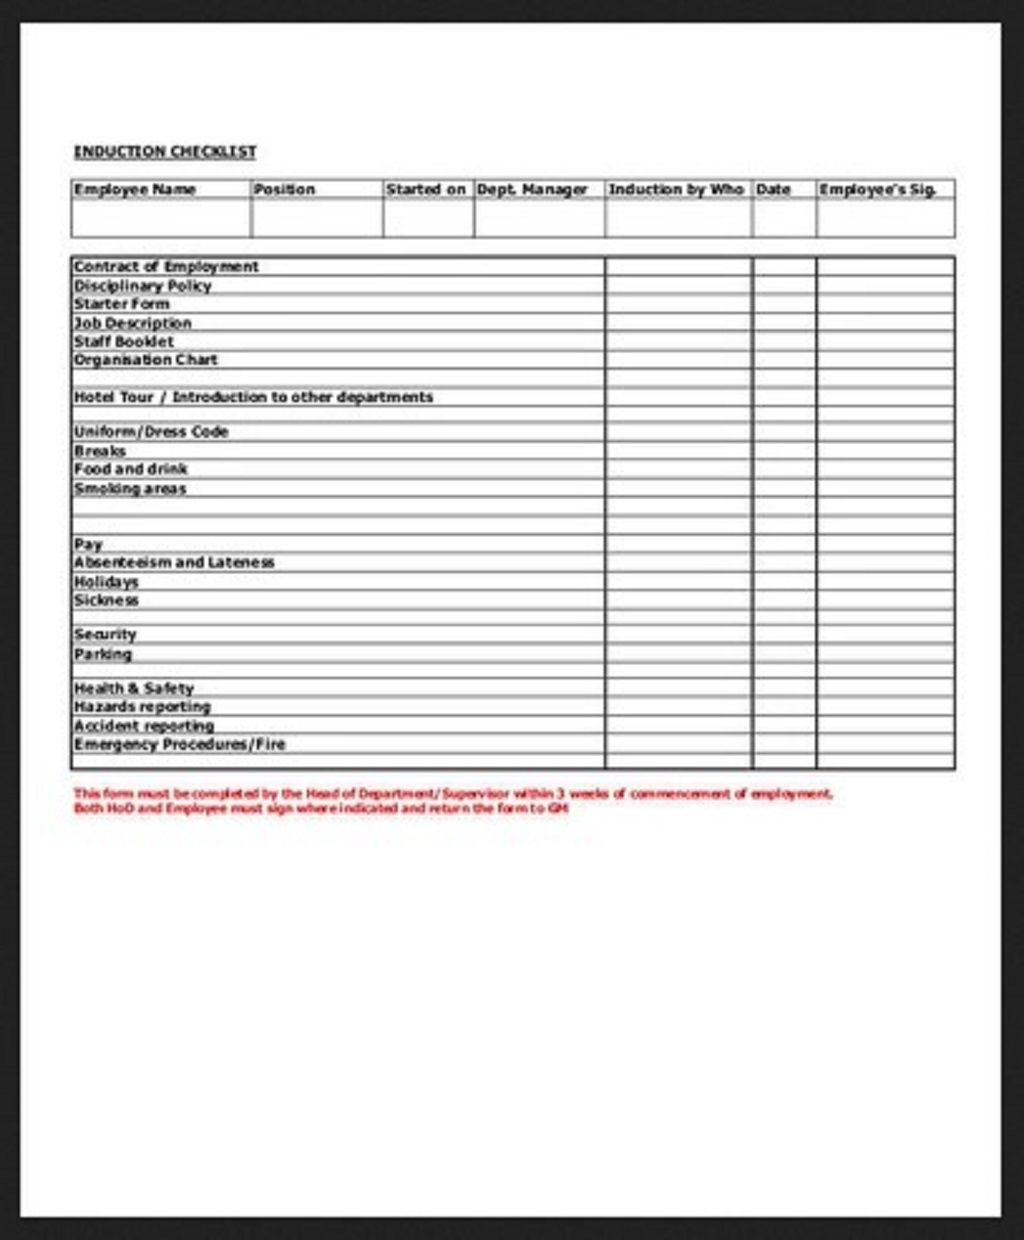 Induction Training Checklist Example Employee Word Pdf Template Google Docs  Samples Large